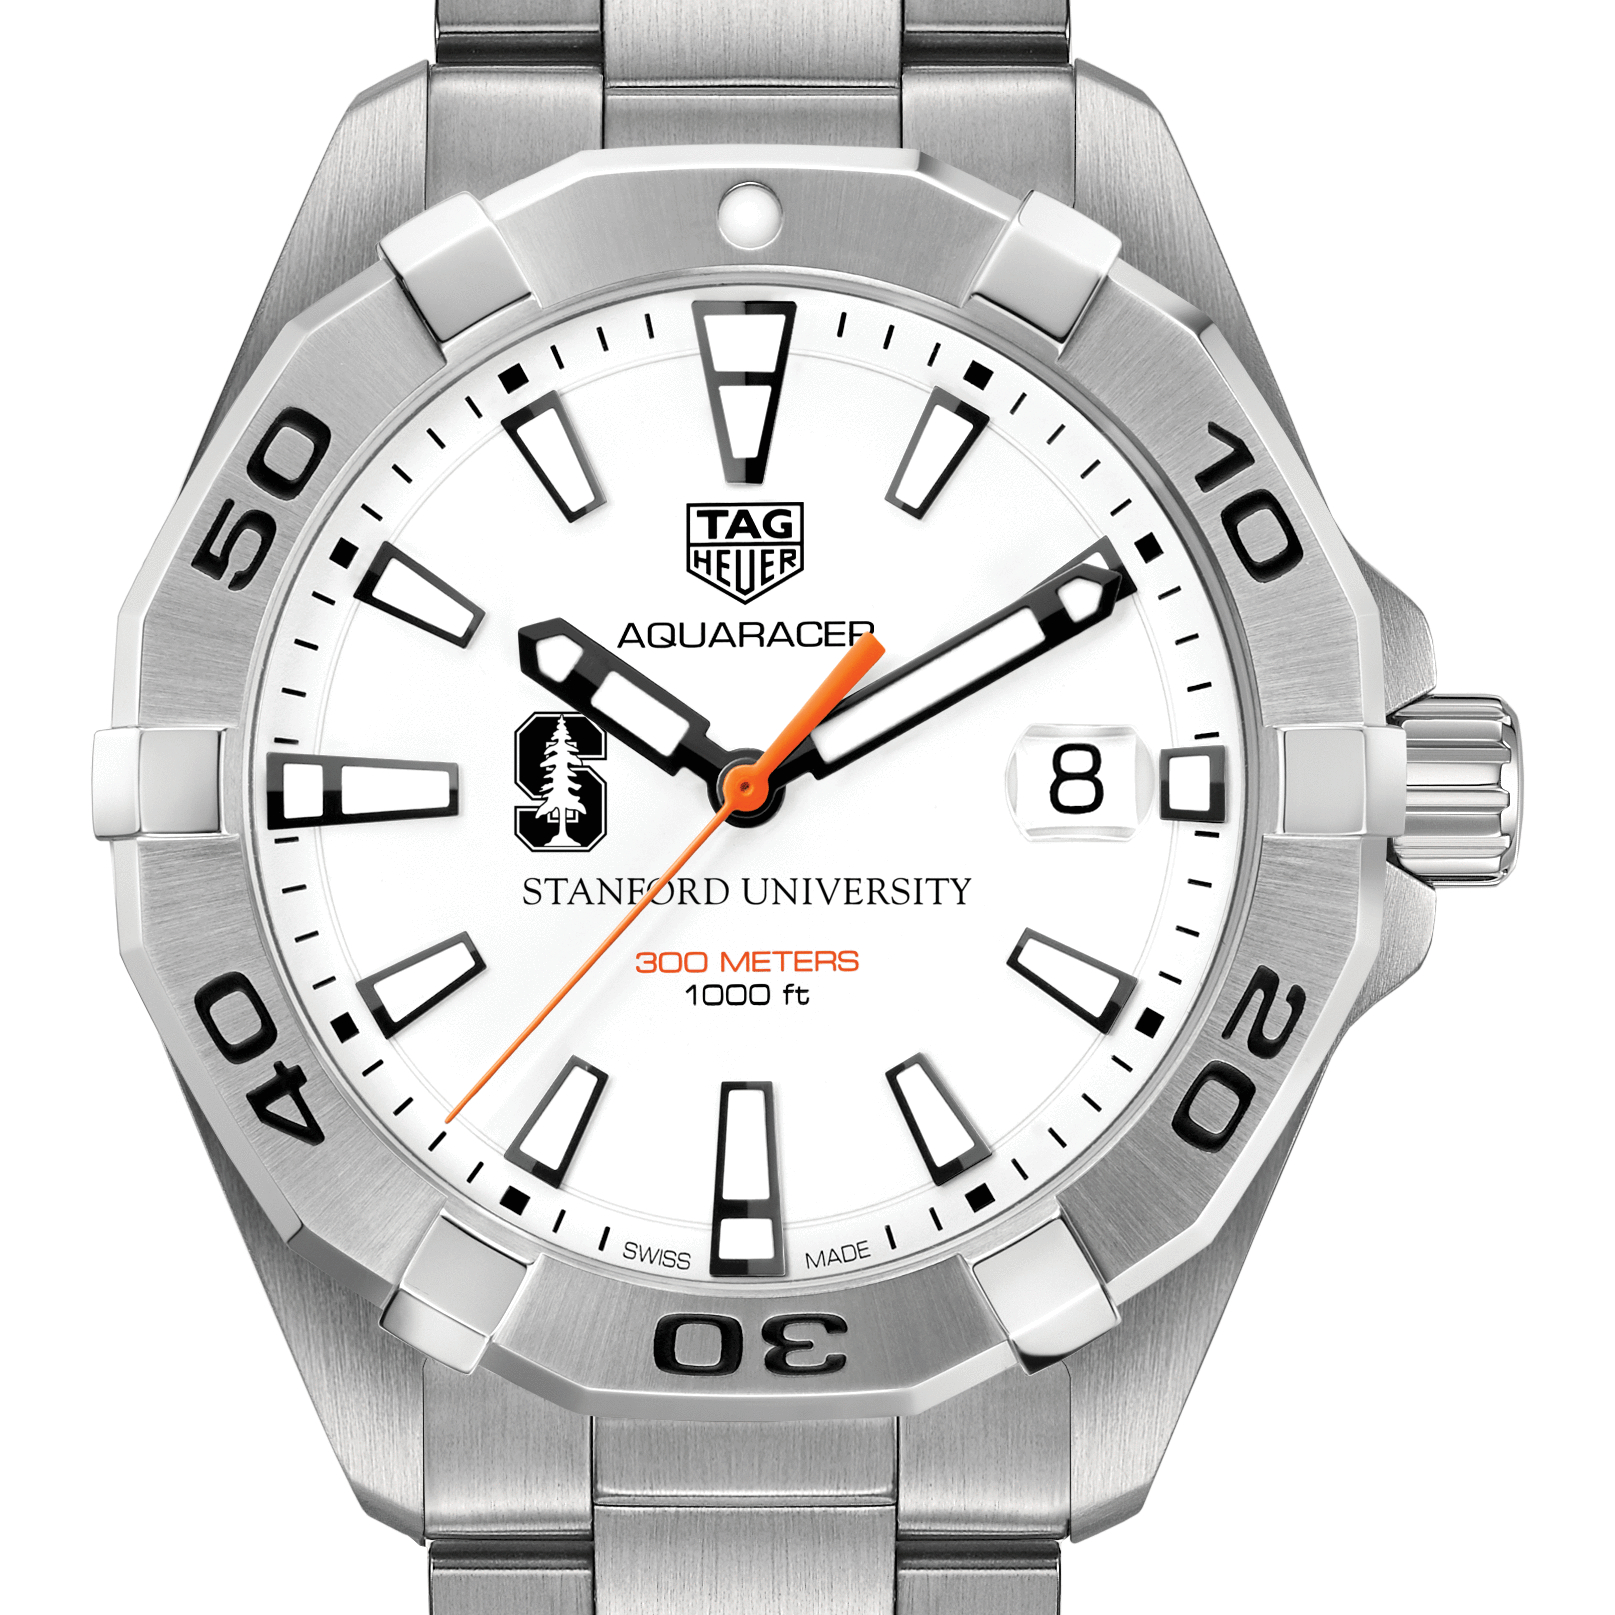 Stanford University Men's TAG Heuer Steel Aquaracer